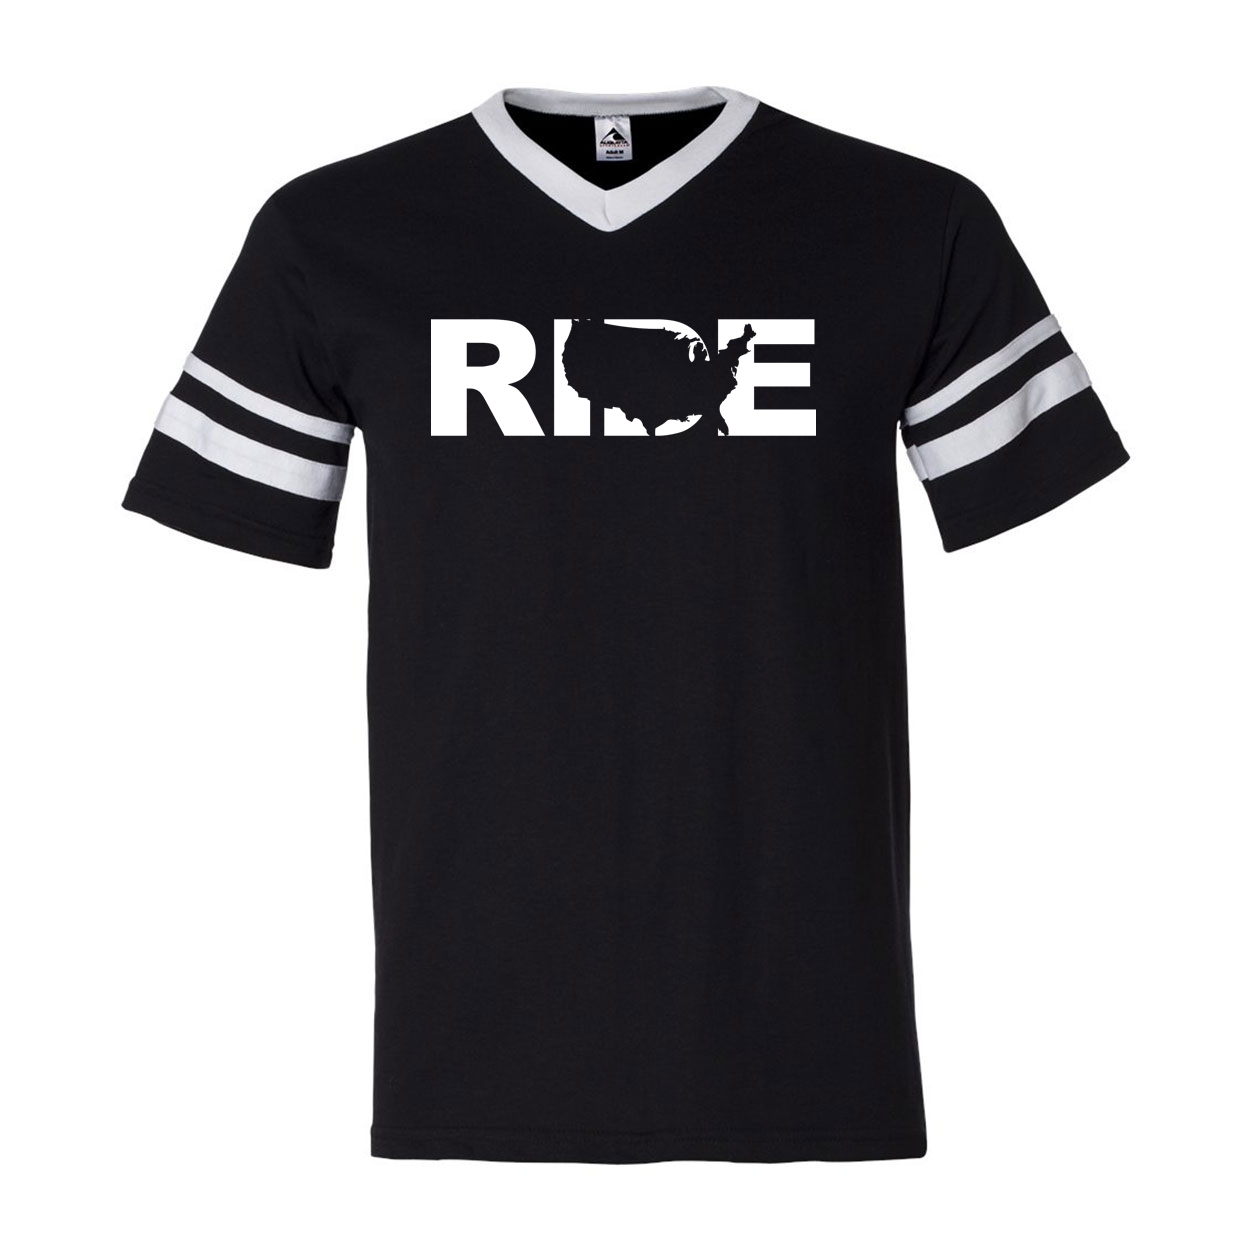 Ride United States Classic Premium Striped Jersey T-Shirt Black/White (White Logo)